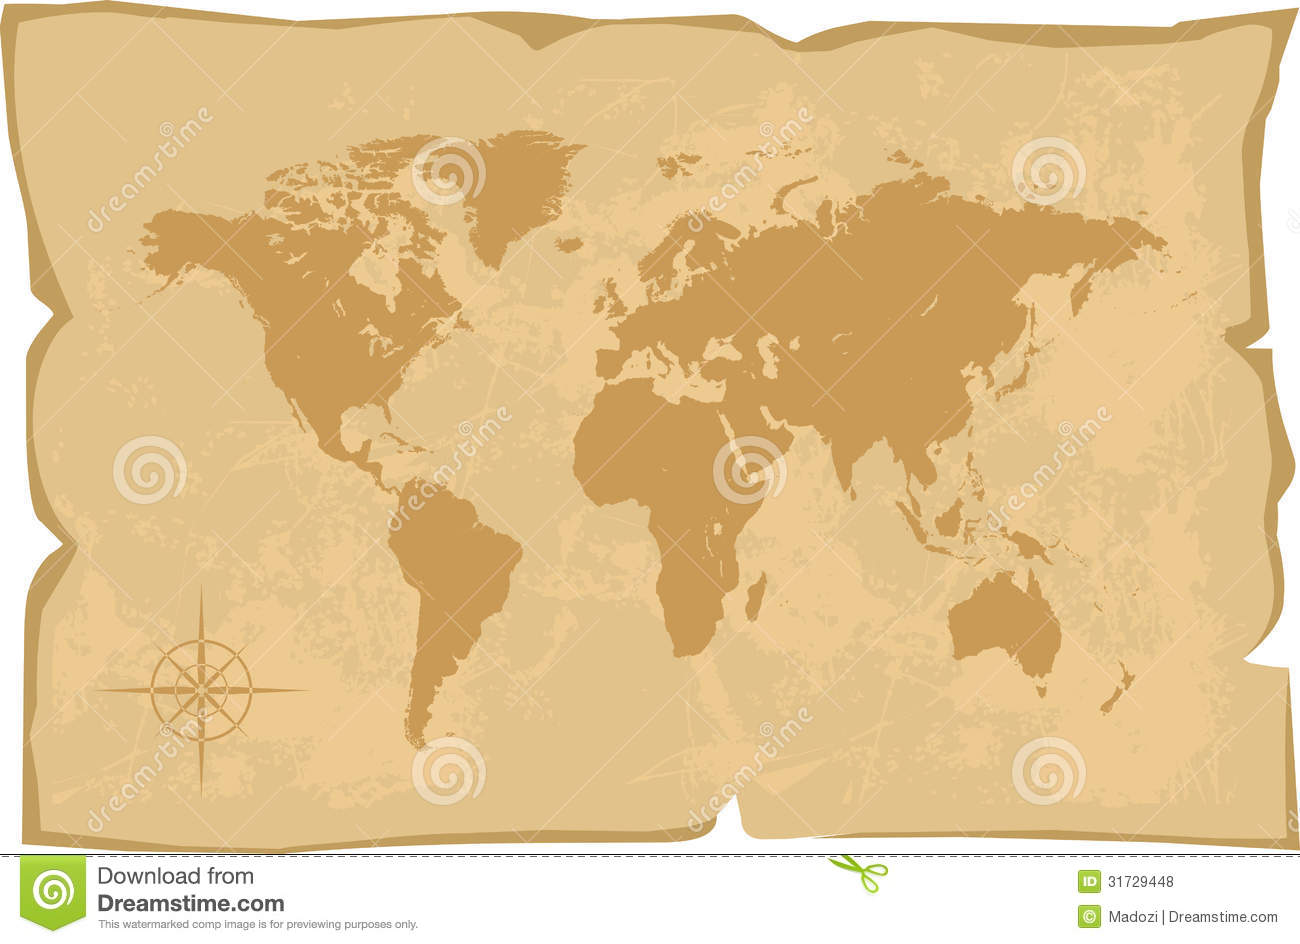 world map old style royalty free stock photos image. Black Bedroom Furniture Sets. Home Design Ideas